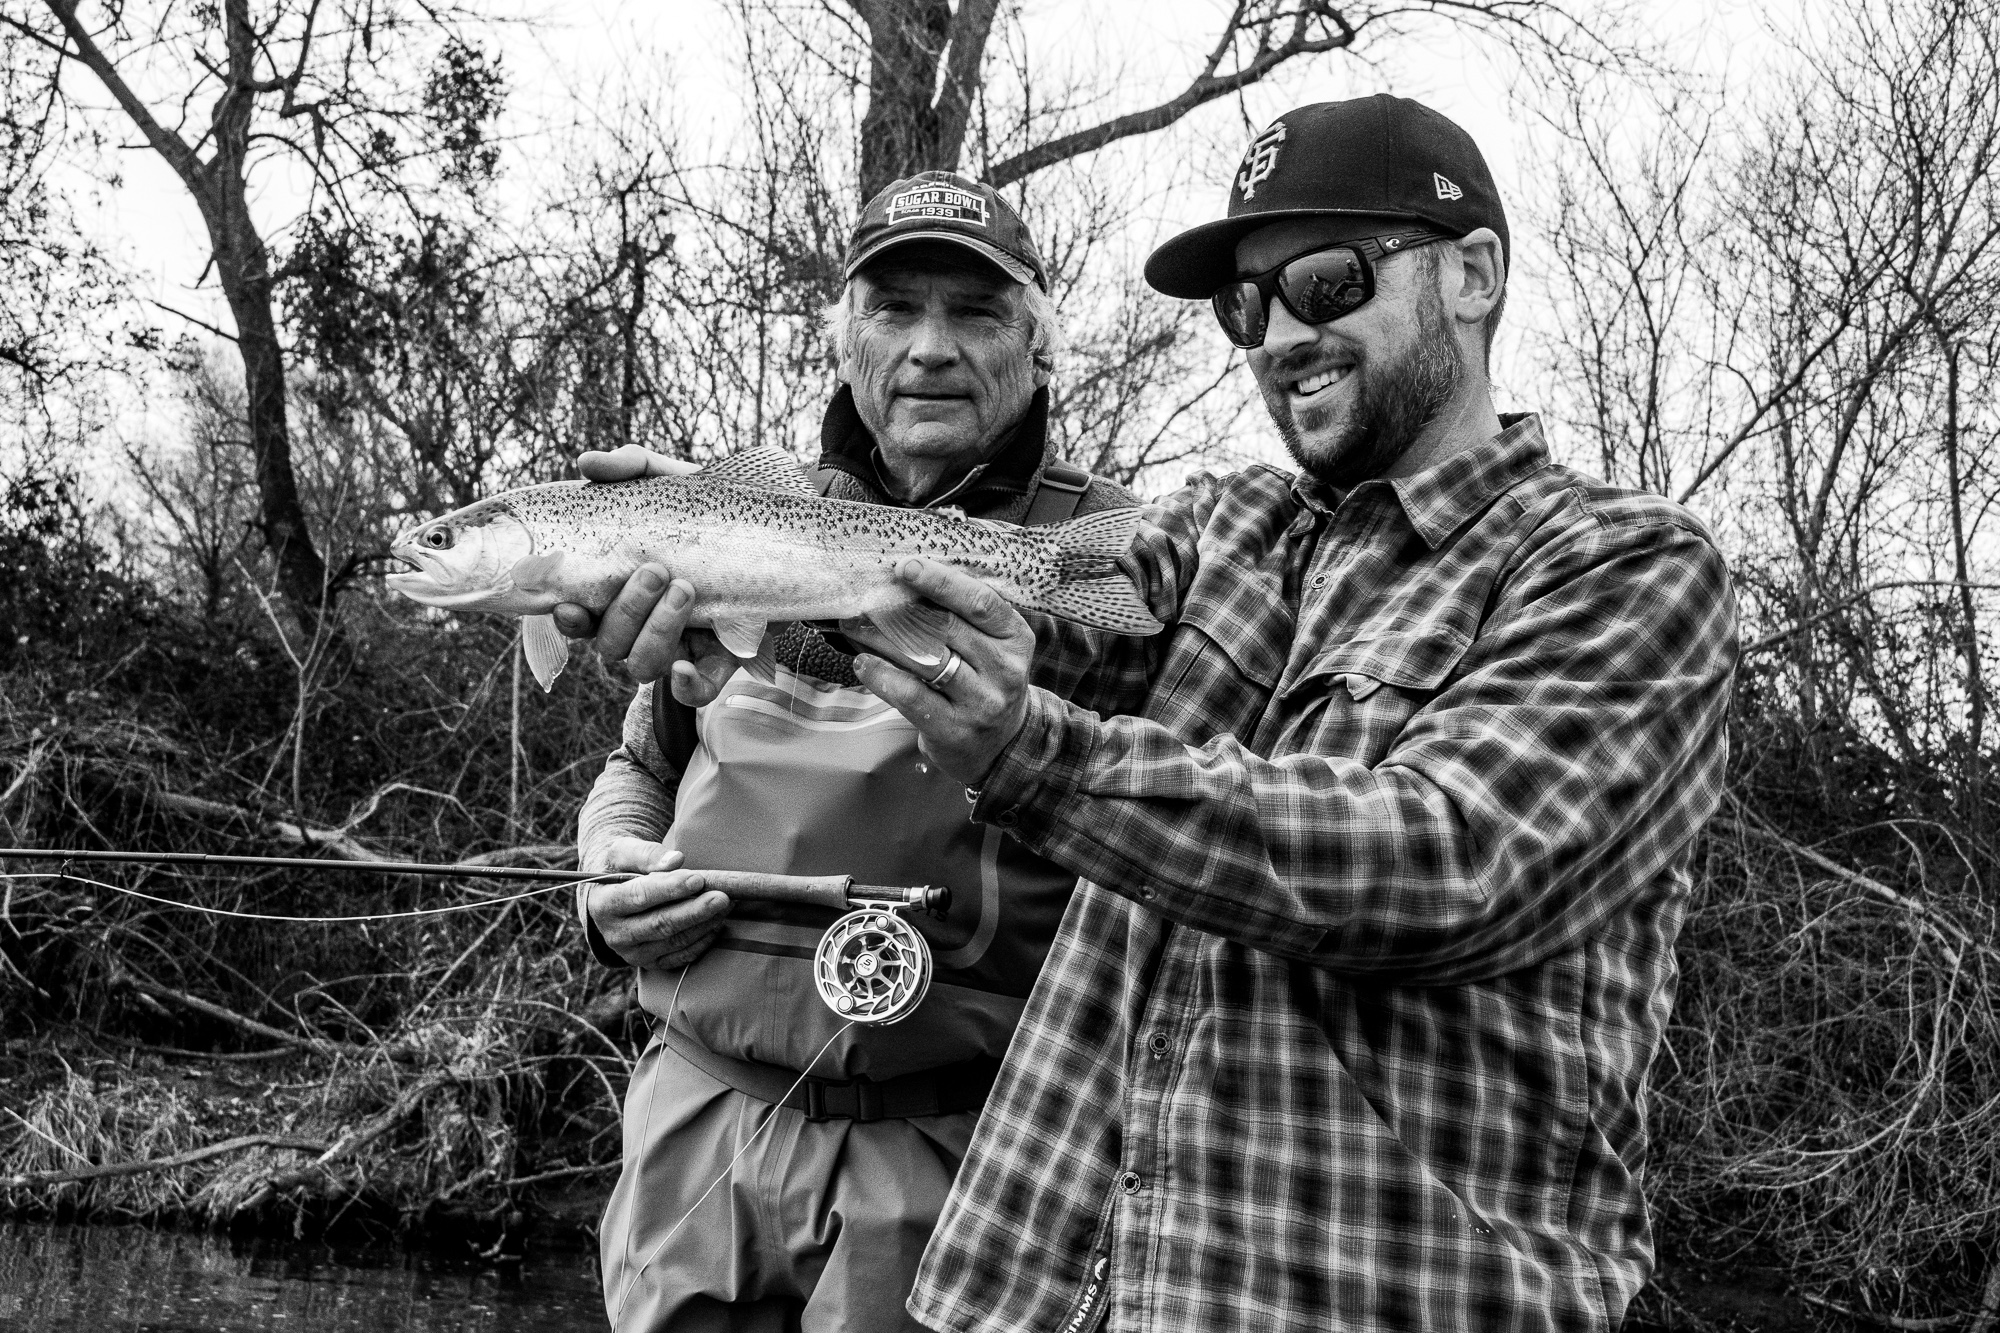 Trout and Steelhead - Northern California has some of the best Wild Trout and Steelhead fishing in the Lower 48. There are 3 tail water fisheries with year round rainbow trout fishing and both spring and fall runs of steelhead with in 60 miles of Chico, CA.